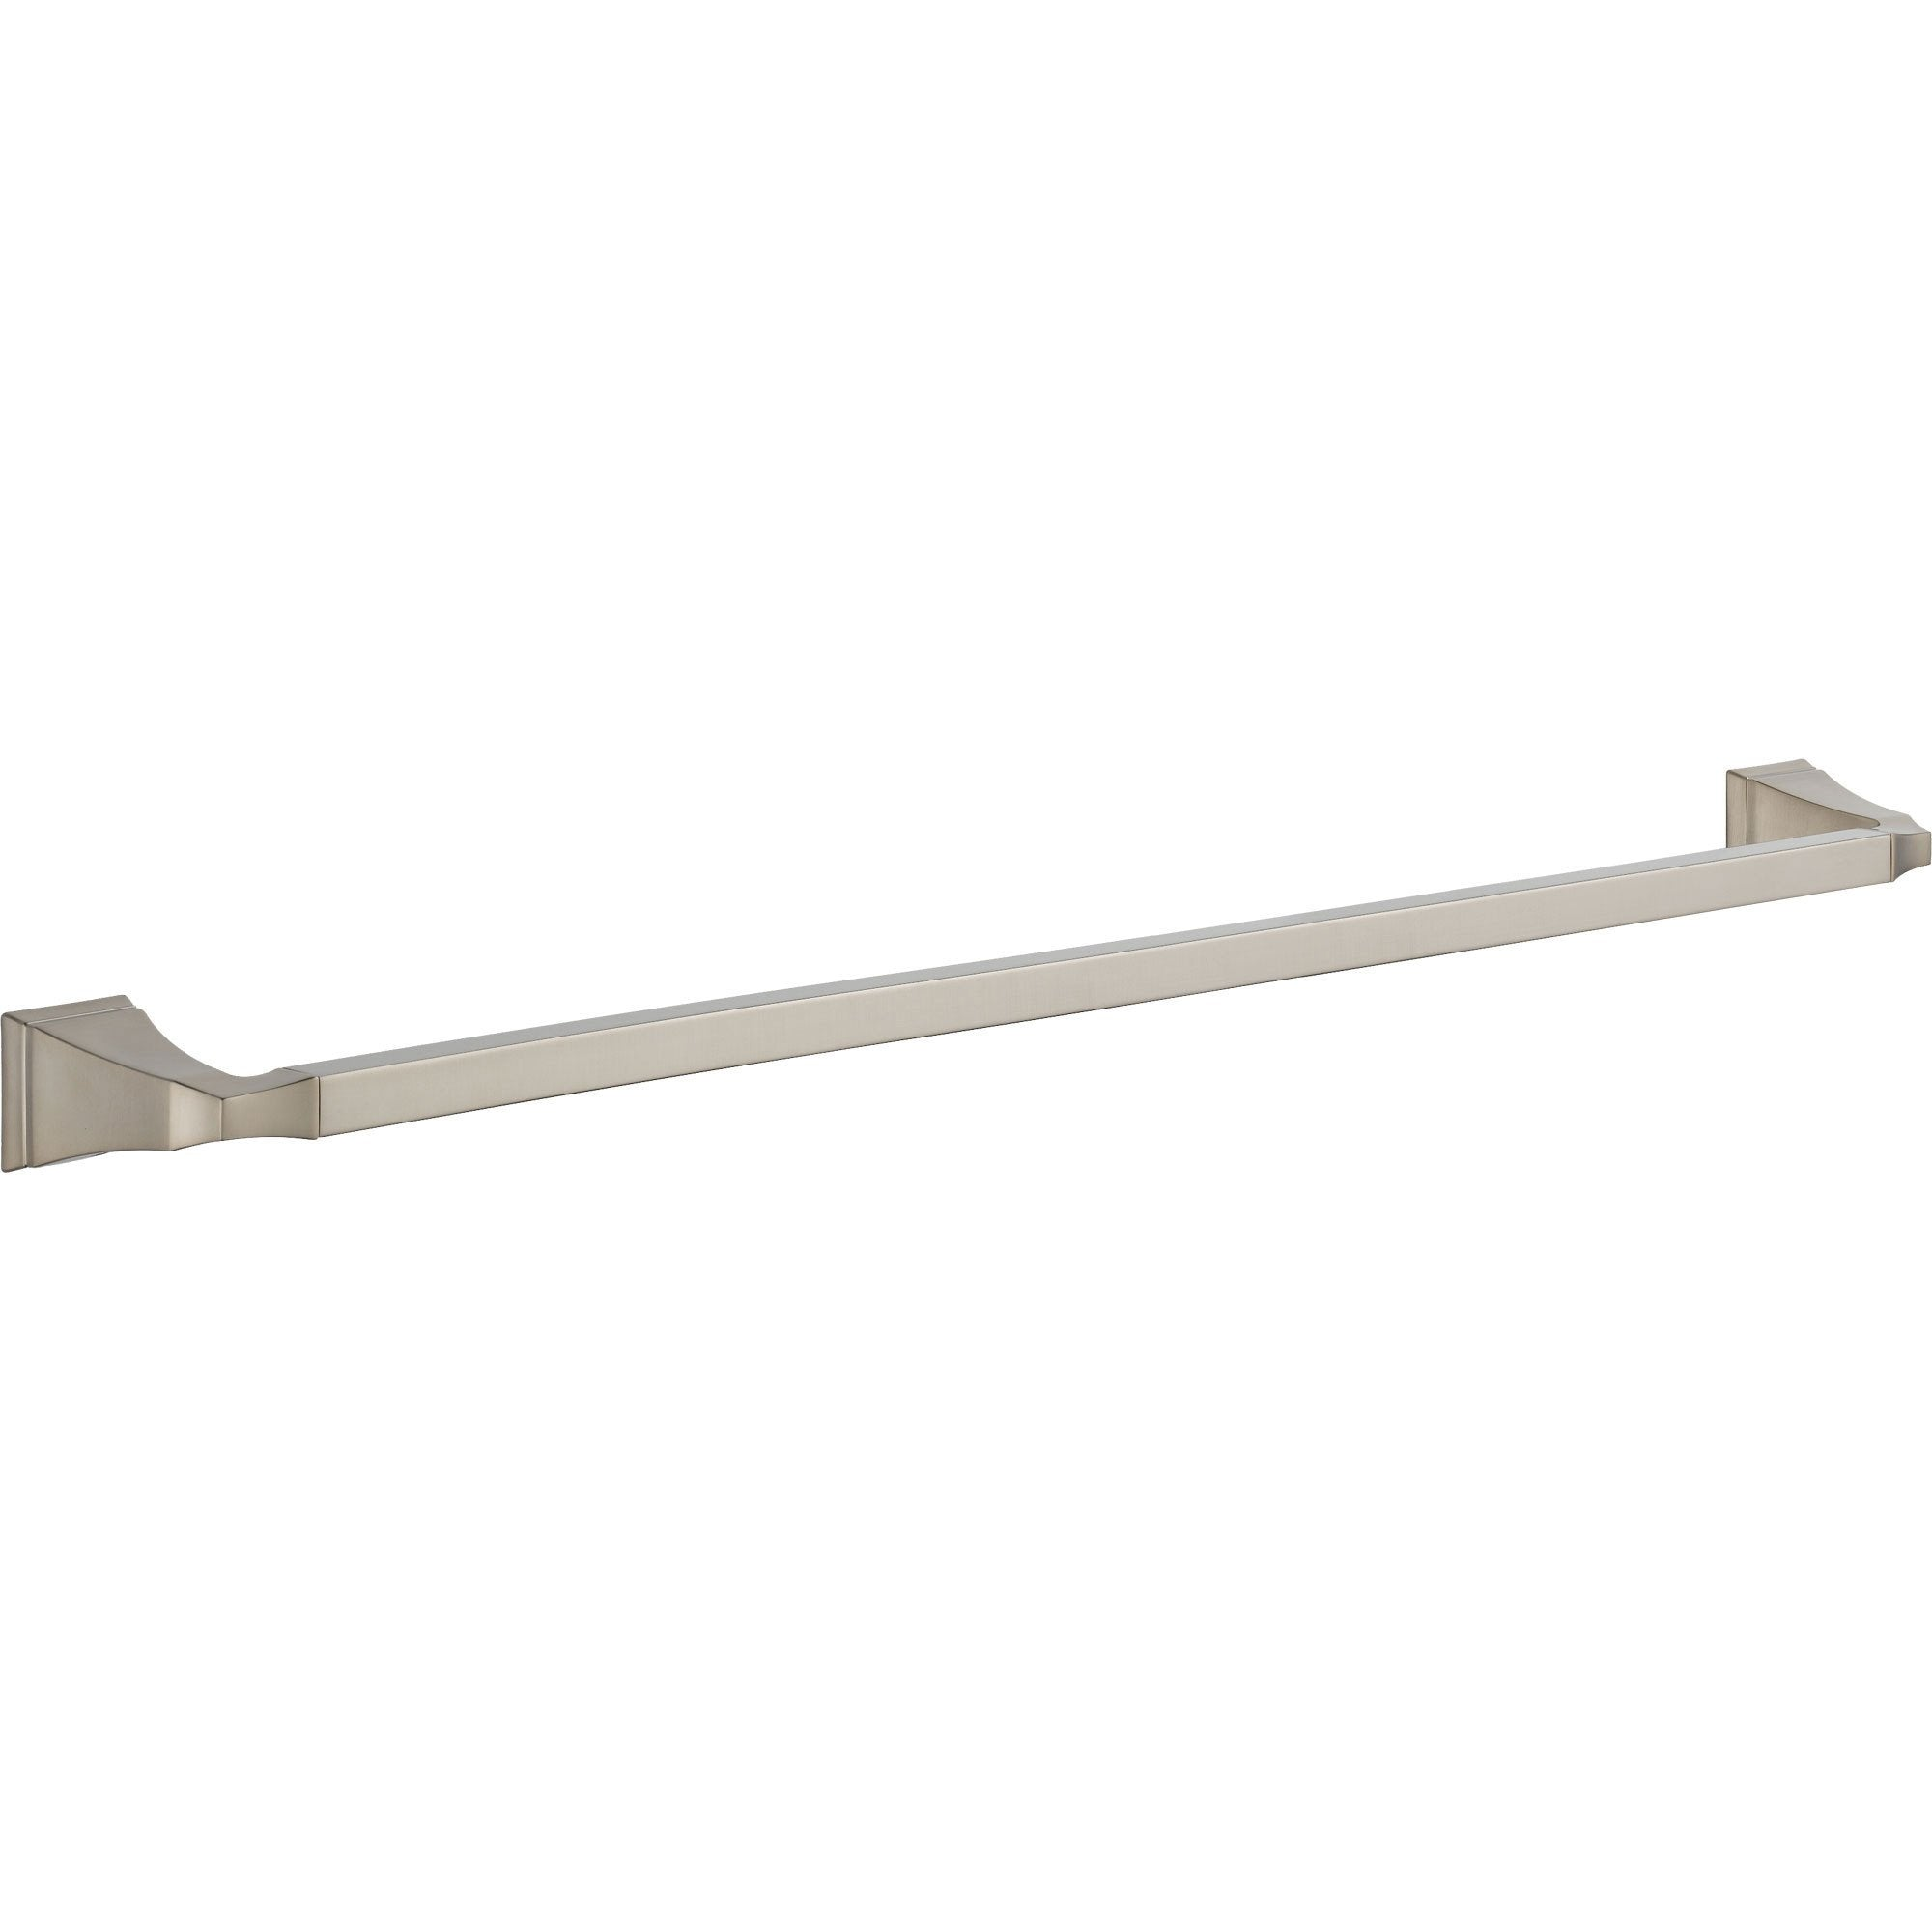 Delta Dryden Stainless Steel Finish 30 inch Modern Single Towel Bar 637088